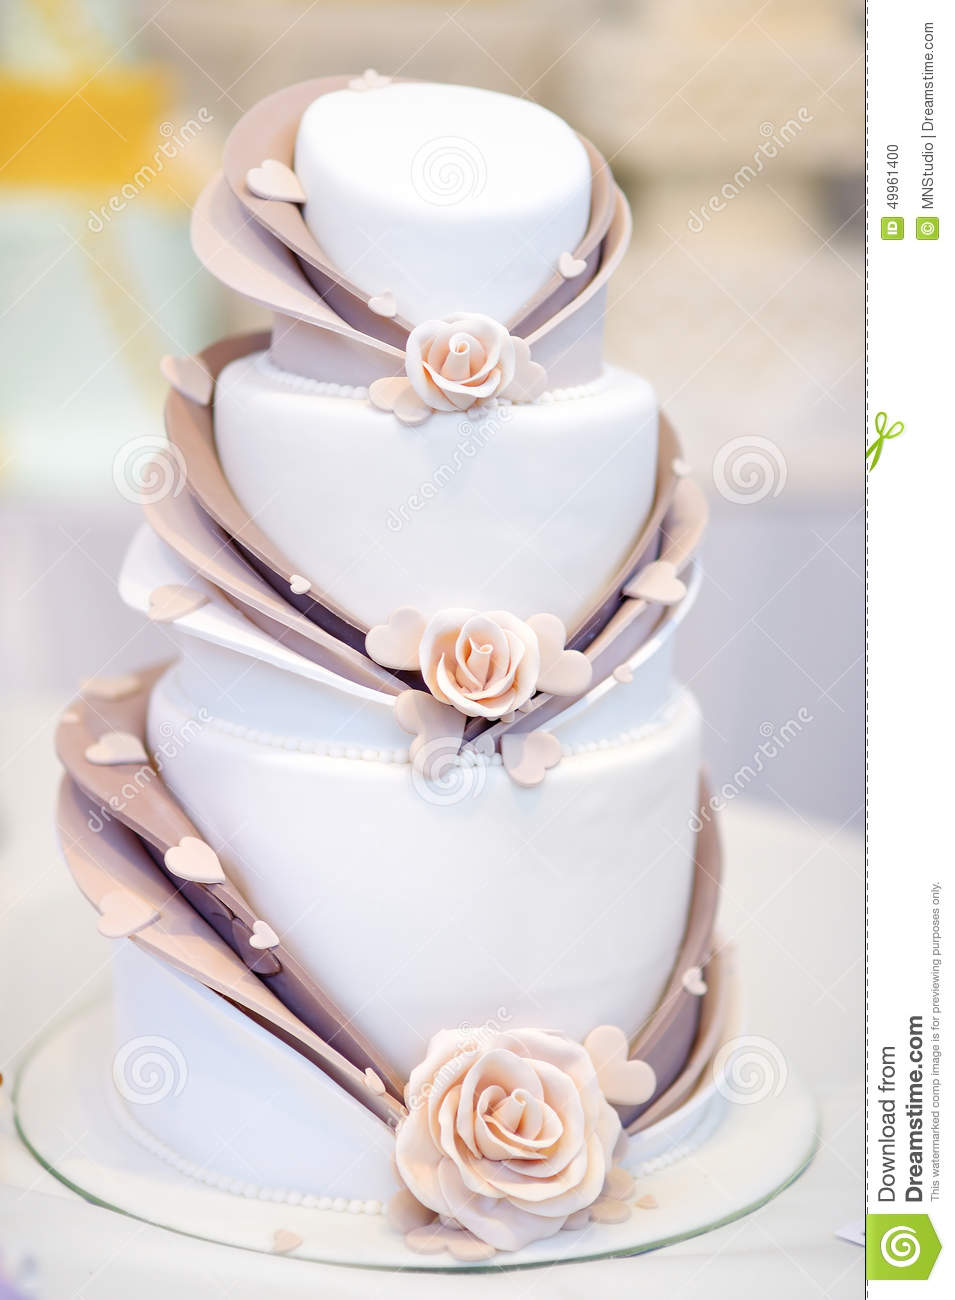 White Wedding Cake Decorated With Sugar Flowers Stock Photo - Image ...